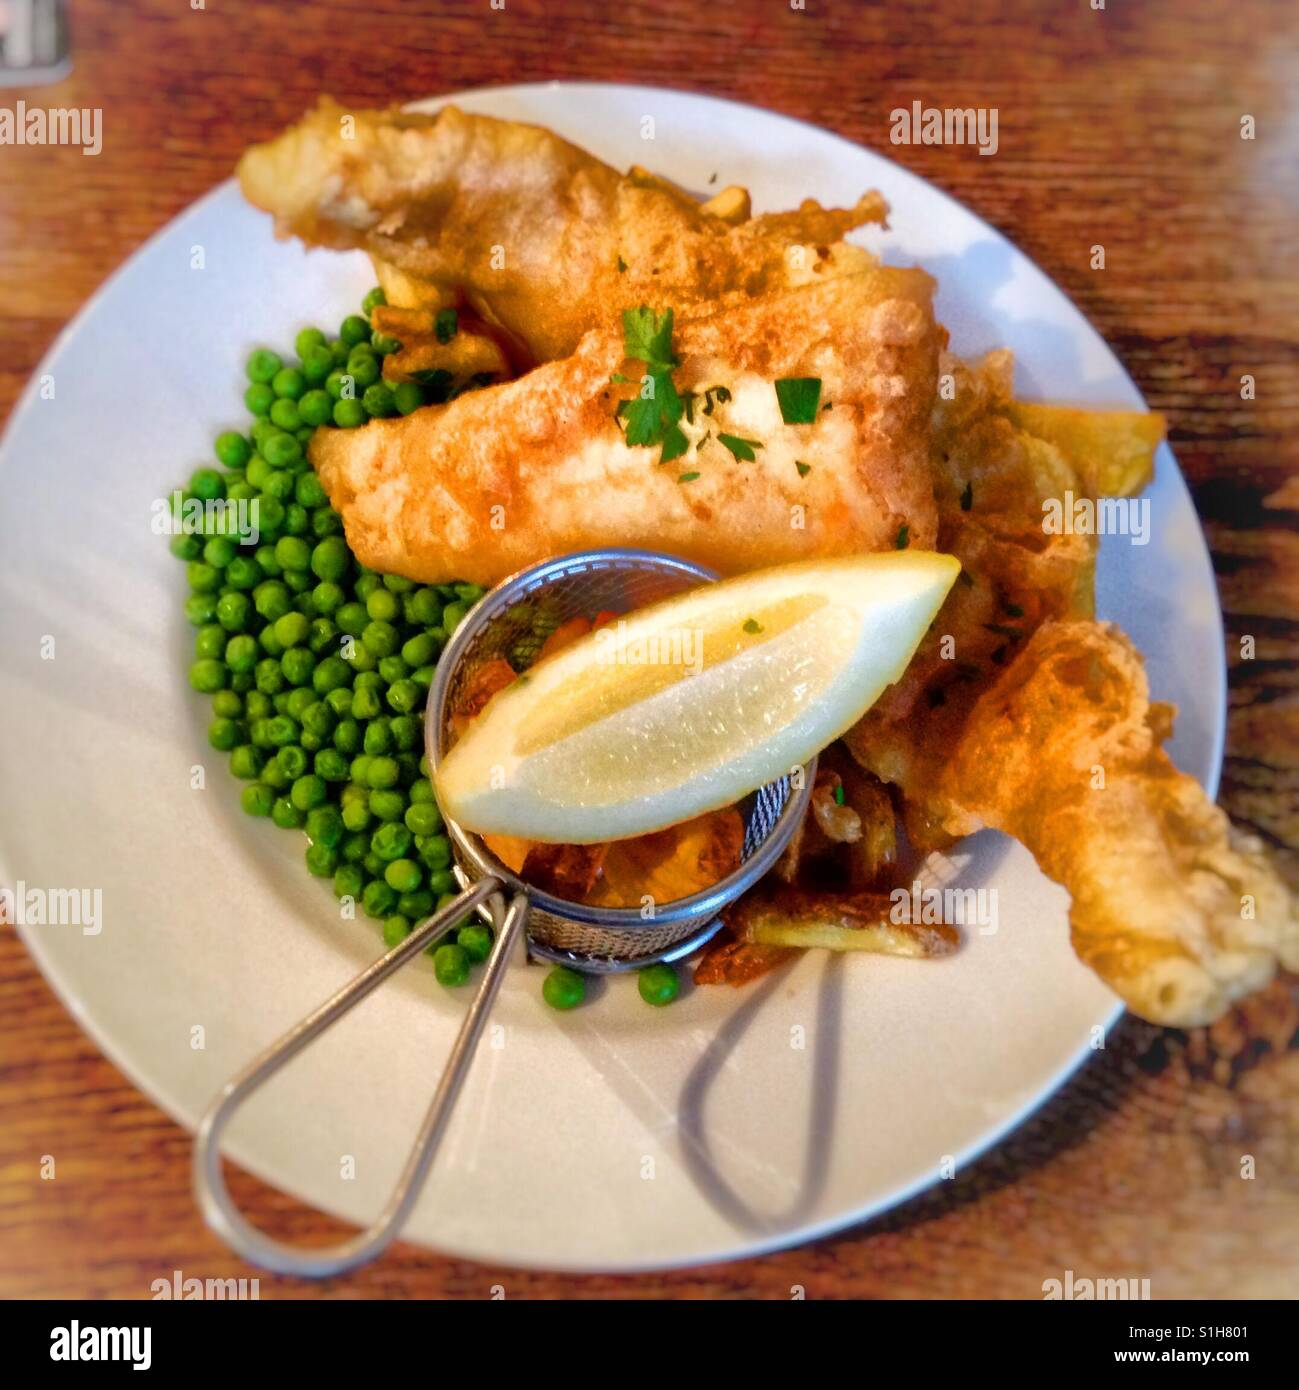 Fish and chips with peas - Stock Image